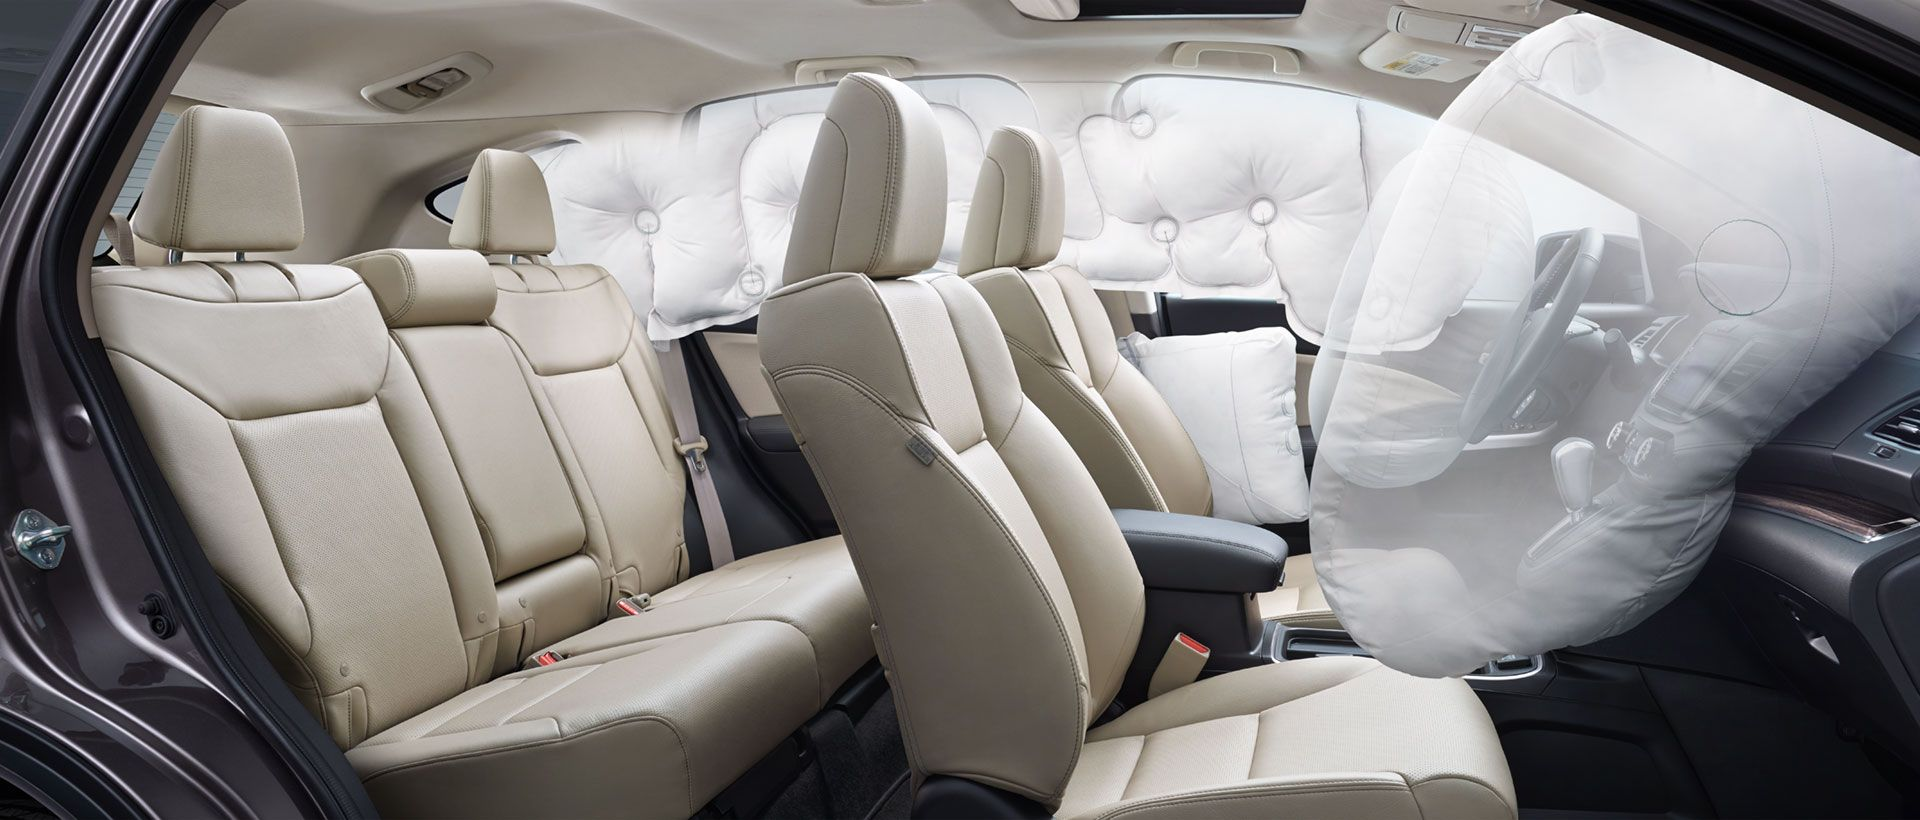 Multiple Airbags Car Safety Honda Cars New Cars